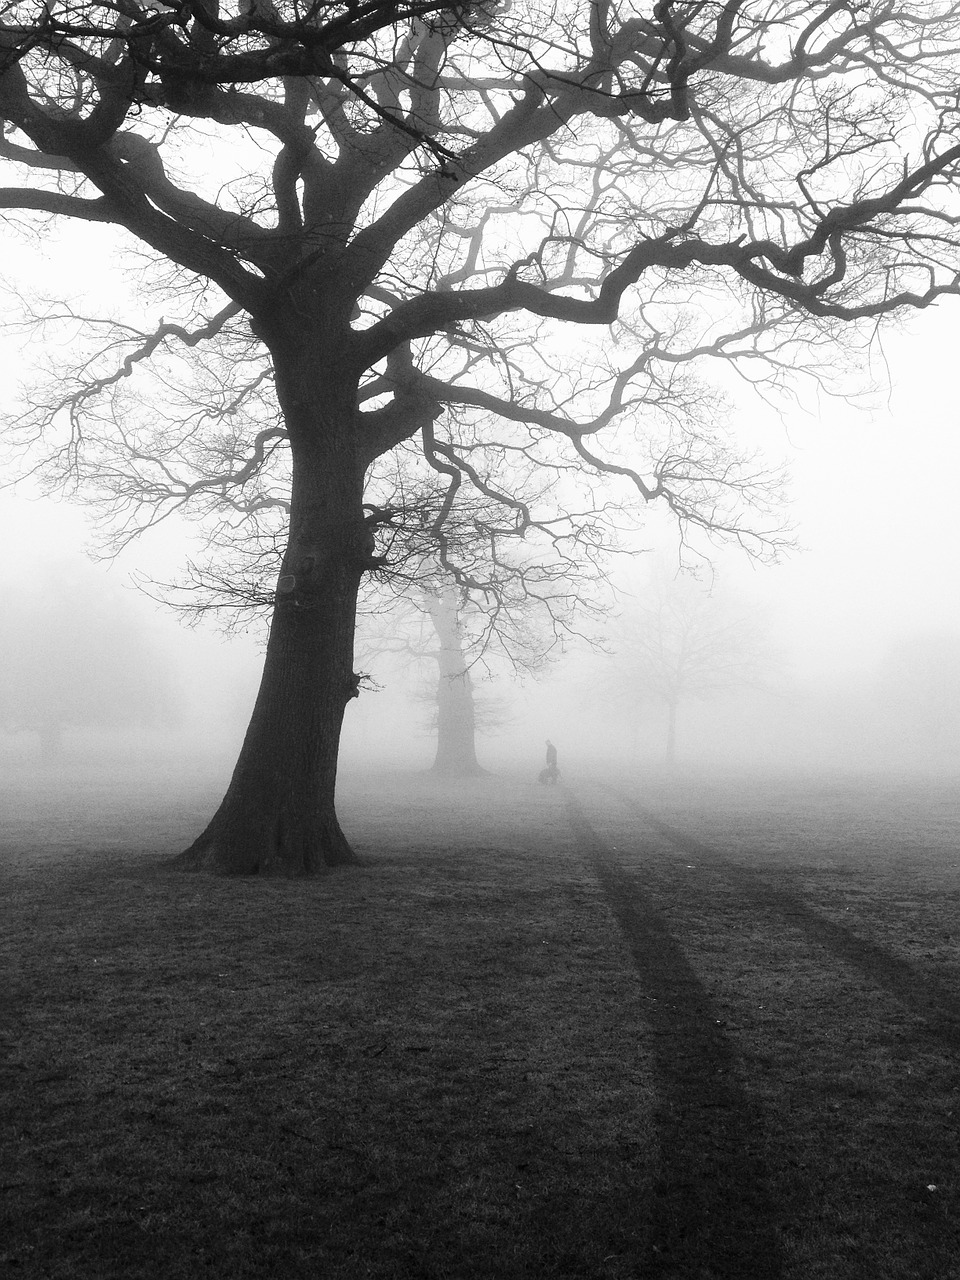 https://pixabay.com/en/trees-mist-fog-eerie-nature-450854/